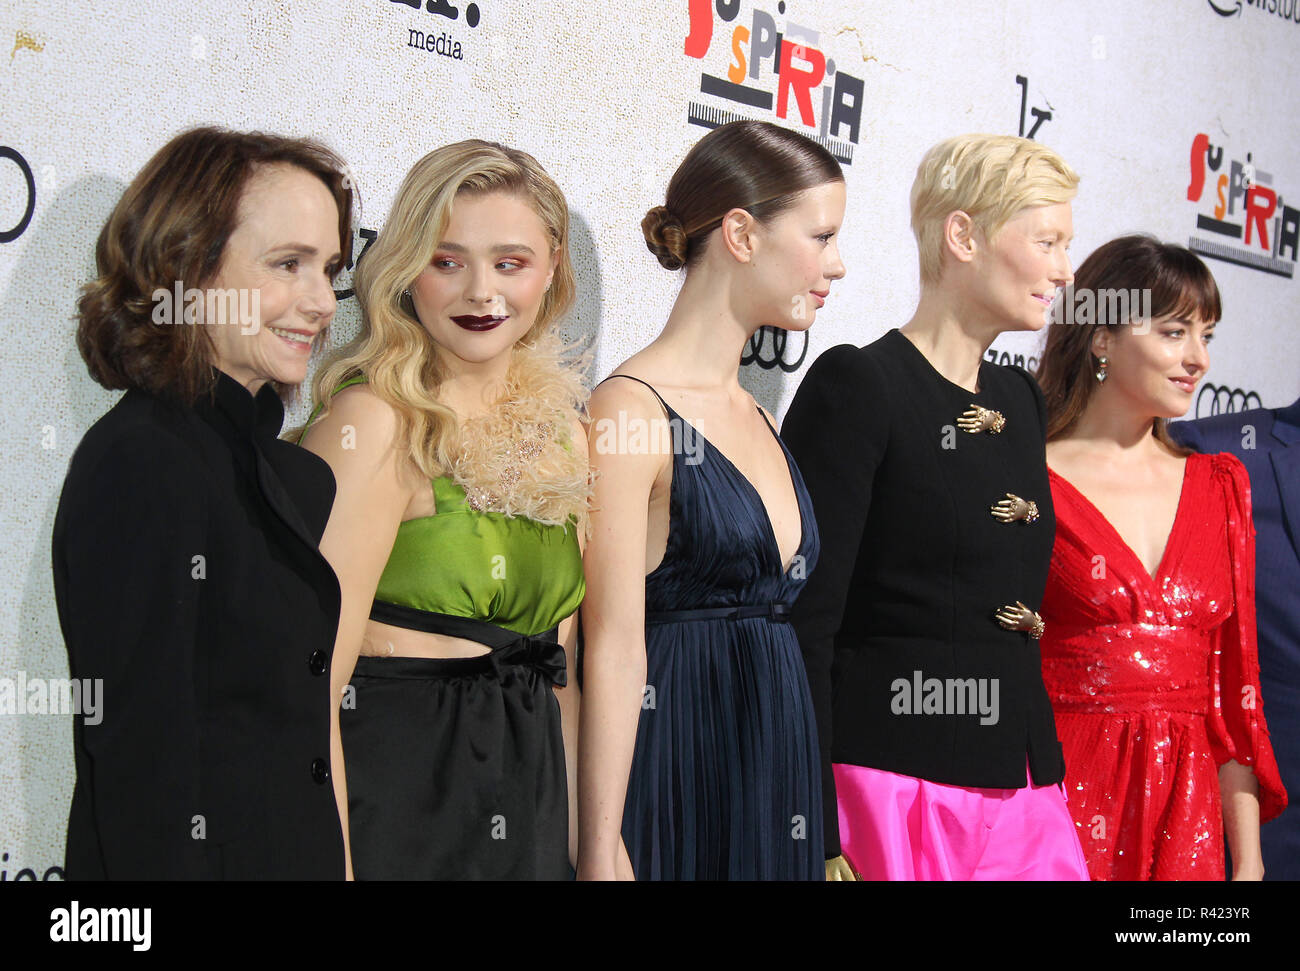 """Suspiria"" Los Angeles Premiere tenue à l'Arclight Hollywood Cinema Dome à Los Angeles, Californie. Avec : Jessica Harper, Chloe Grace Moretz, Mia Goth, Tilda Swinton, Dakota Johnson Où : Los Angeles, California, United States Quand : 24 Oct 2018 Credit : Adriana Barraza M./WENN.com Banque D'Images"